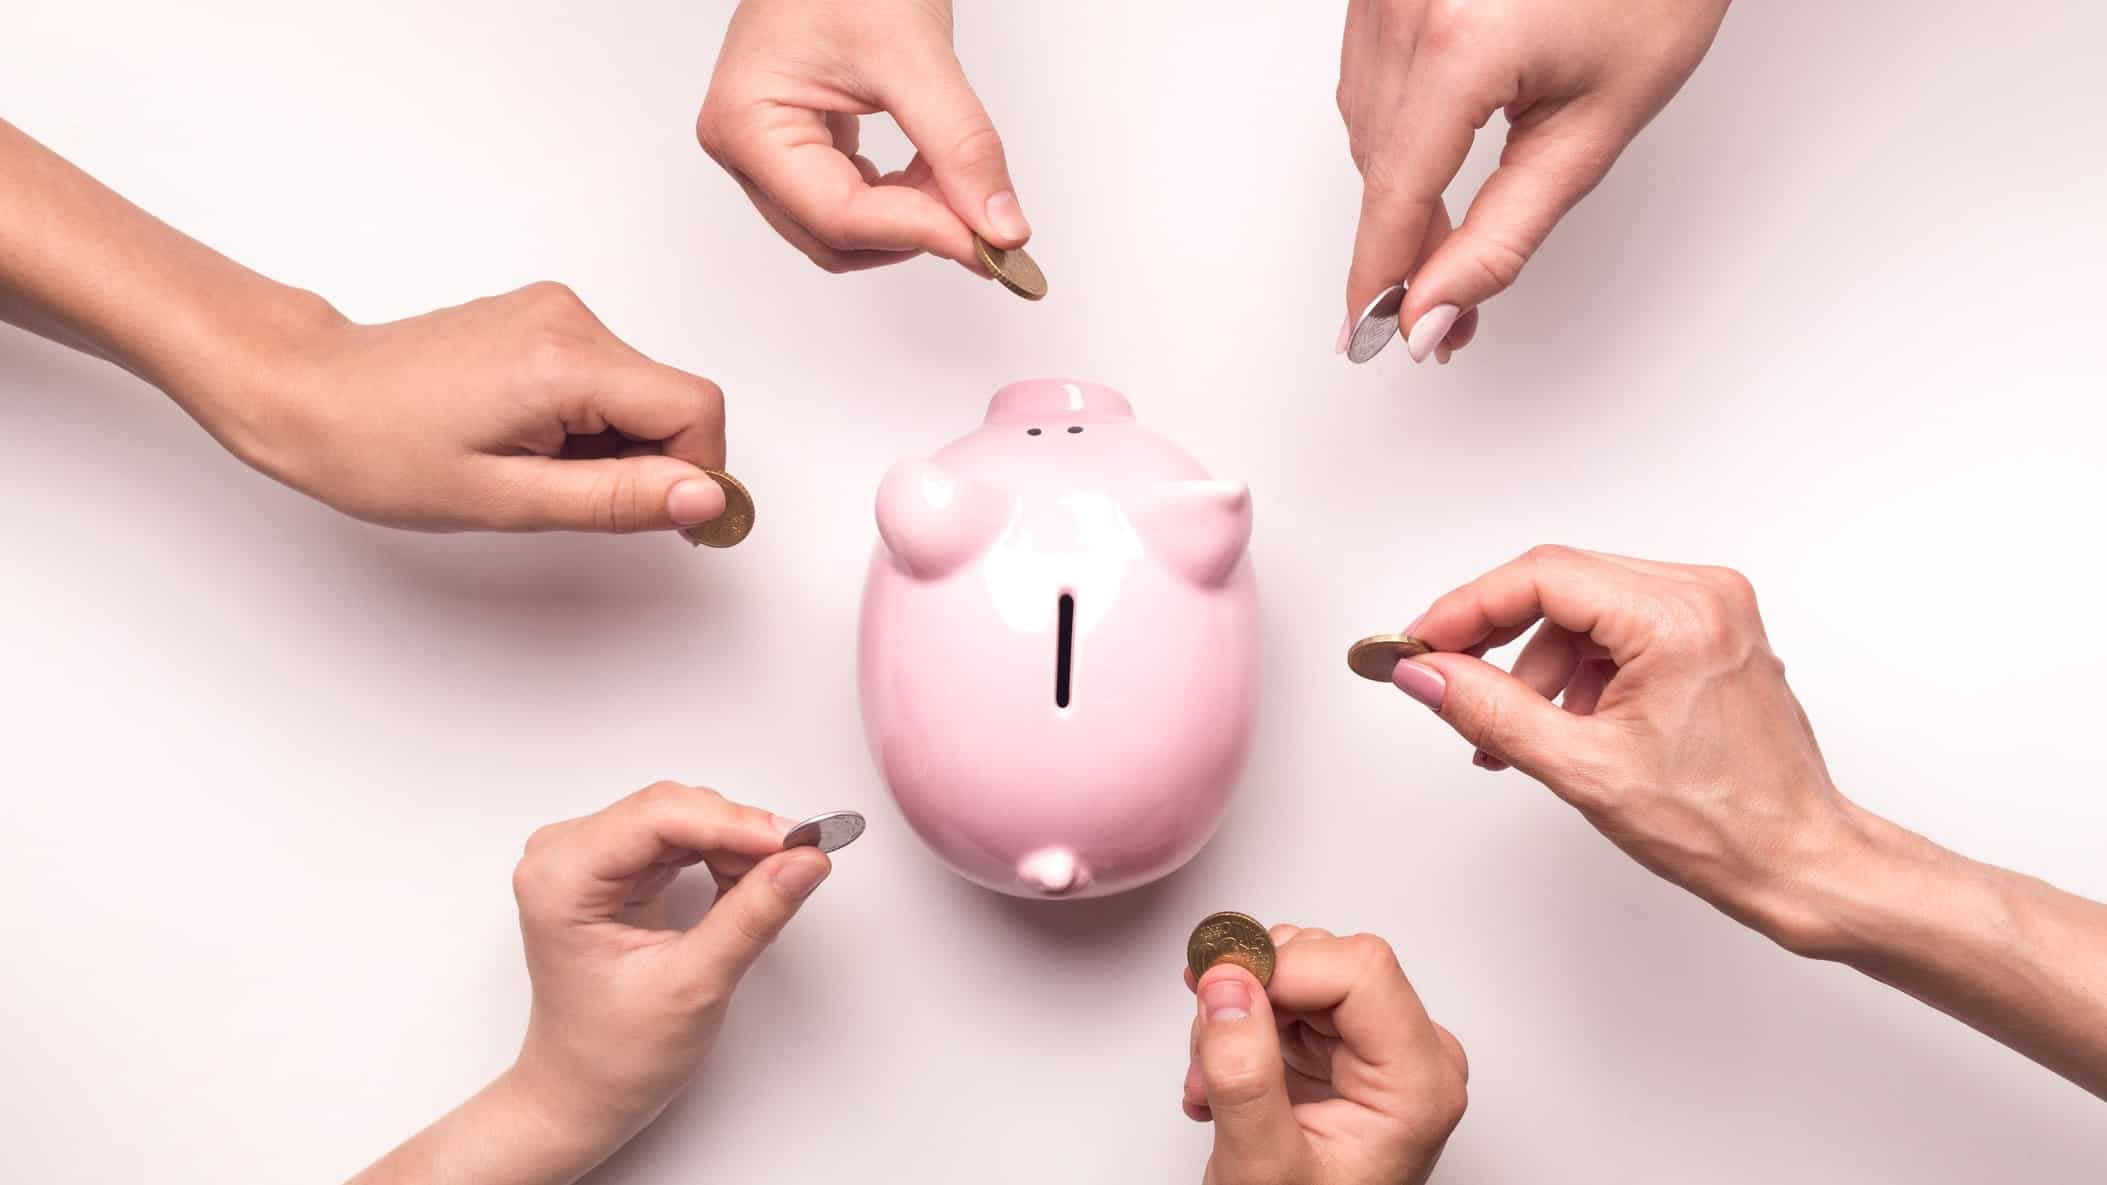 growth in asx share price represented by multiple hands all placing coins in a piggy bank